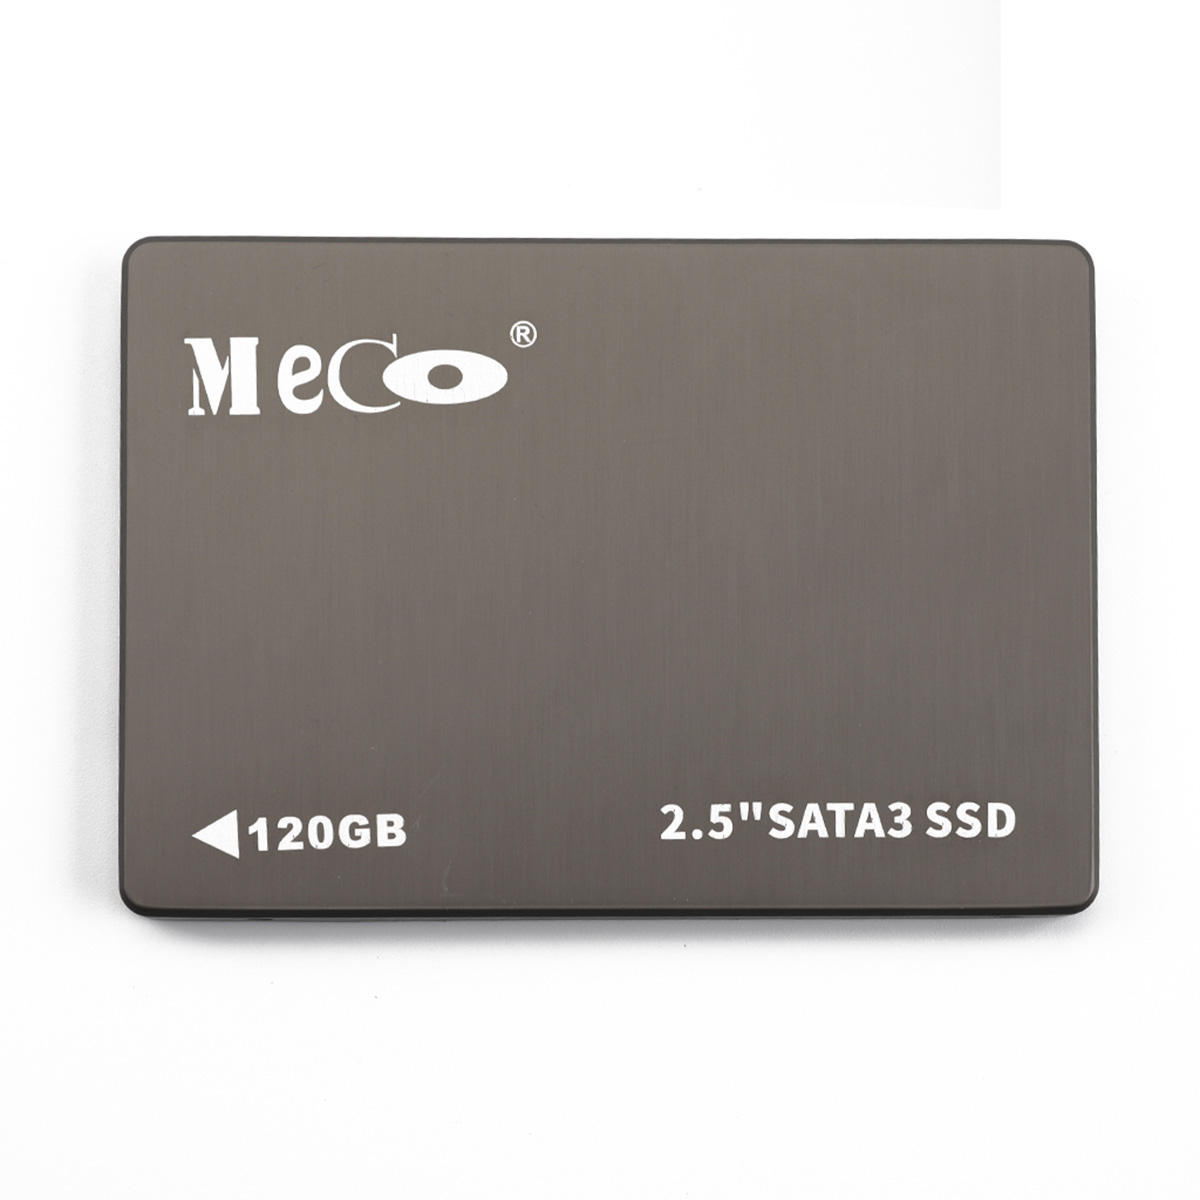 MECO 120GB SSD 2.5inch SATA III High Speed Solid State Disk Hard Drive MLC NAND FLASH